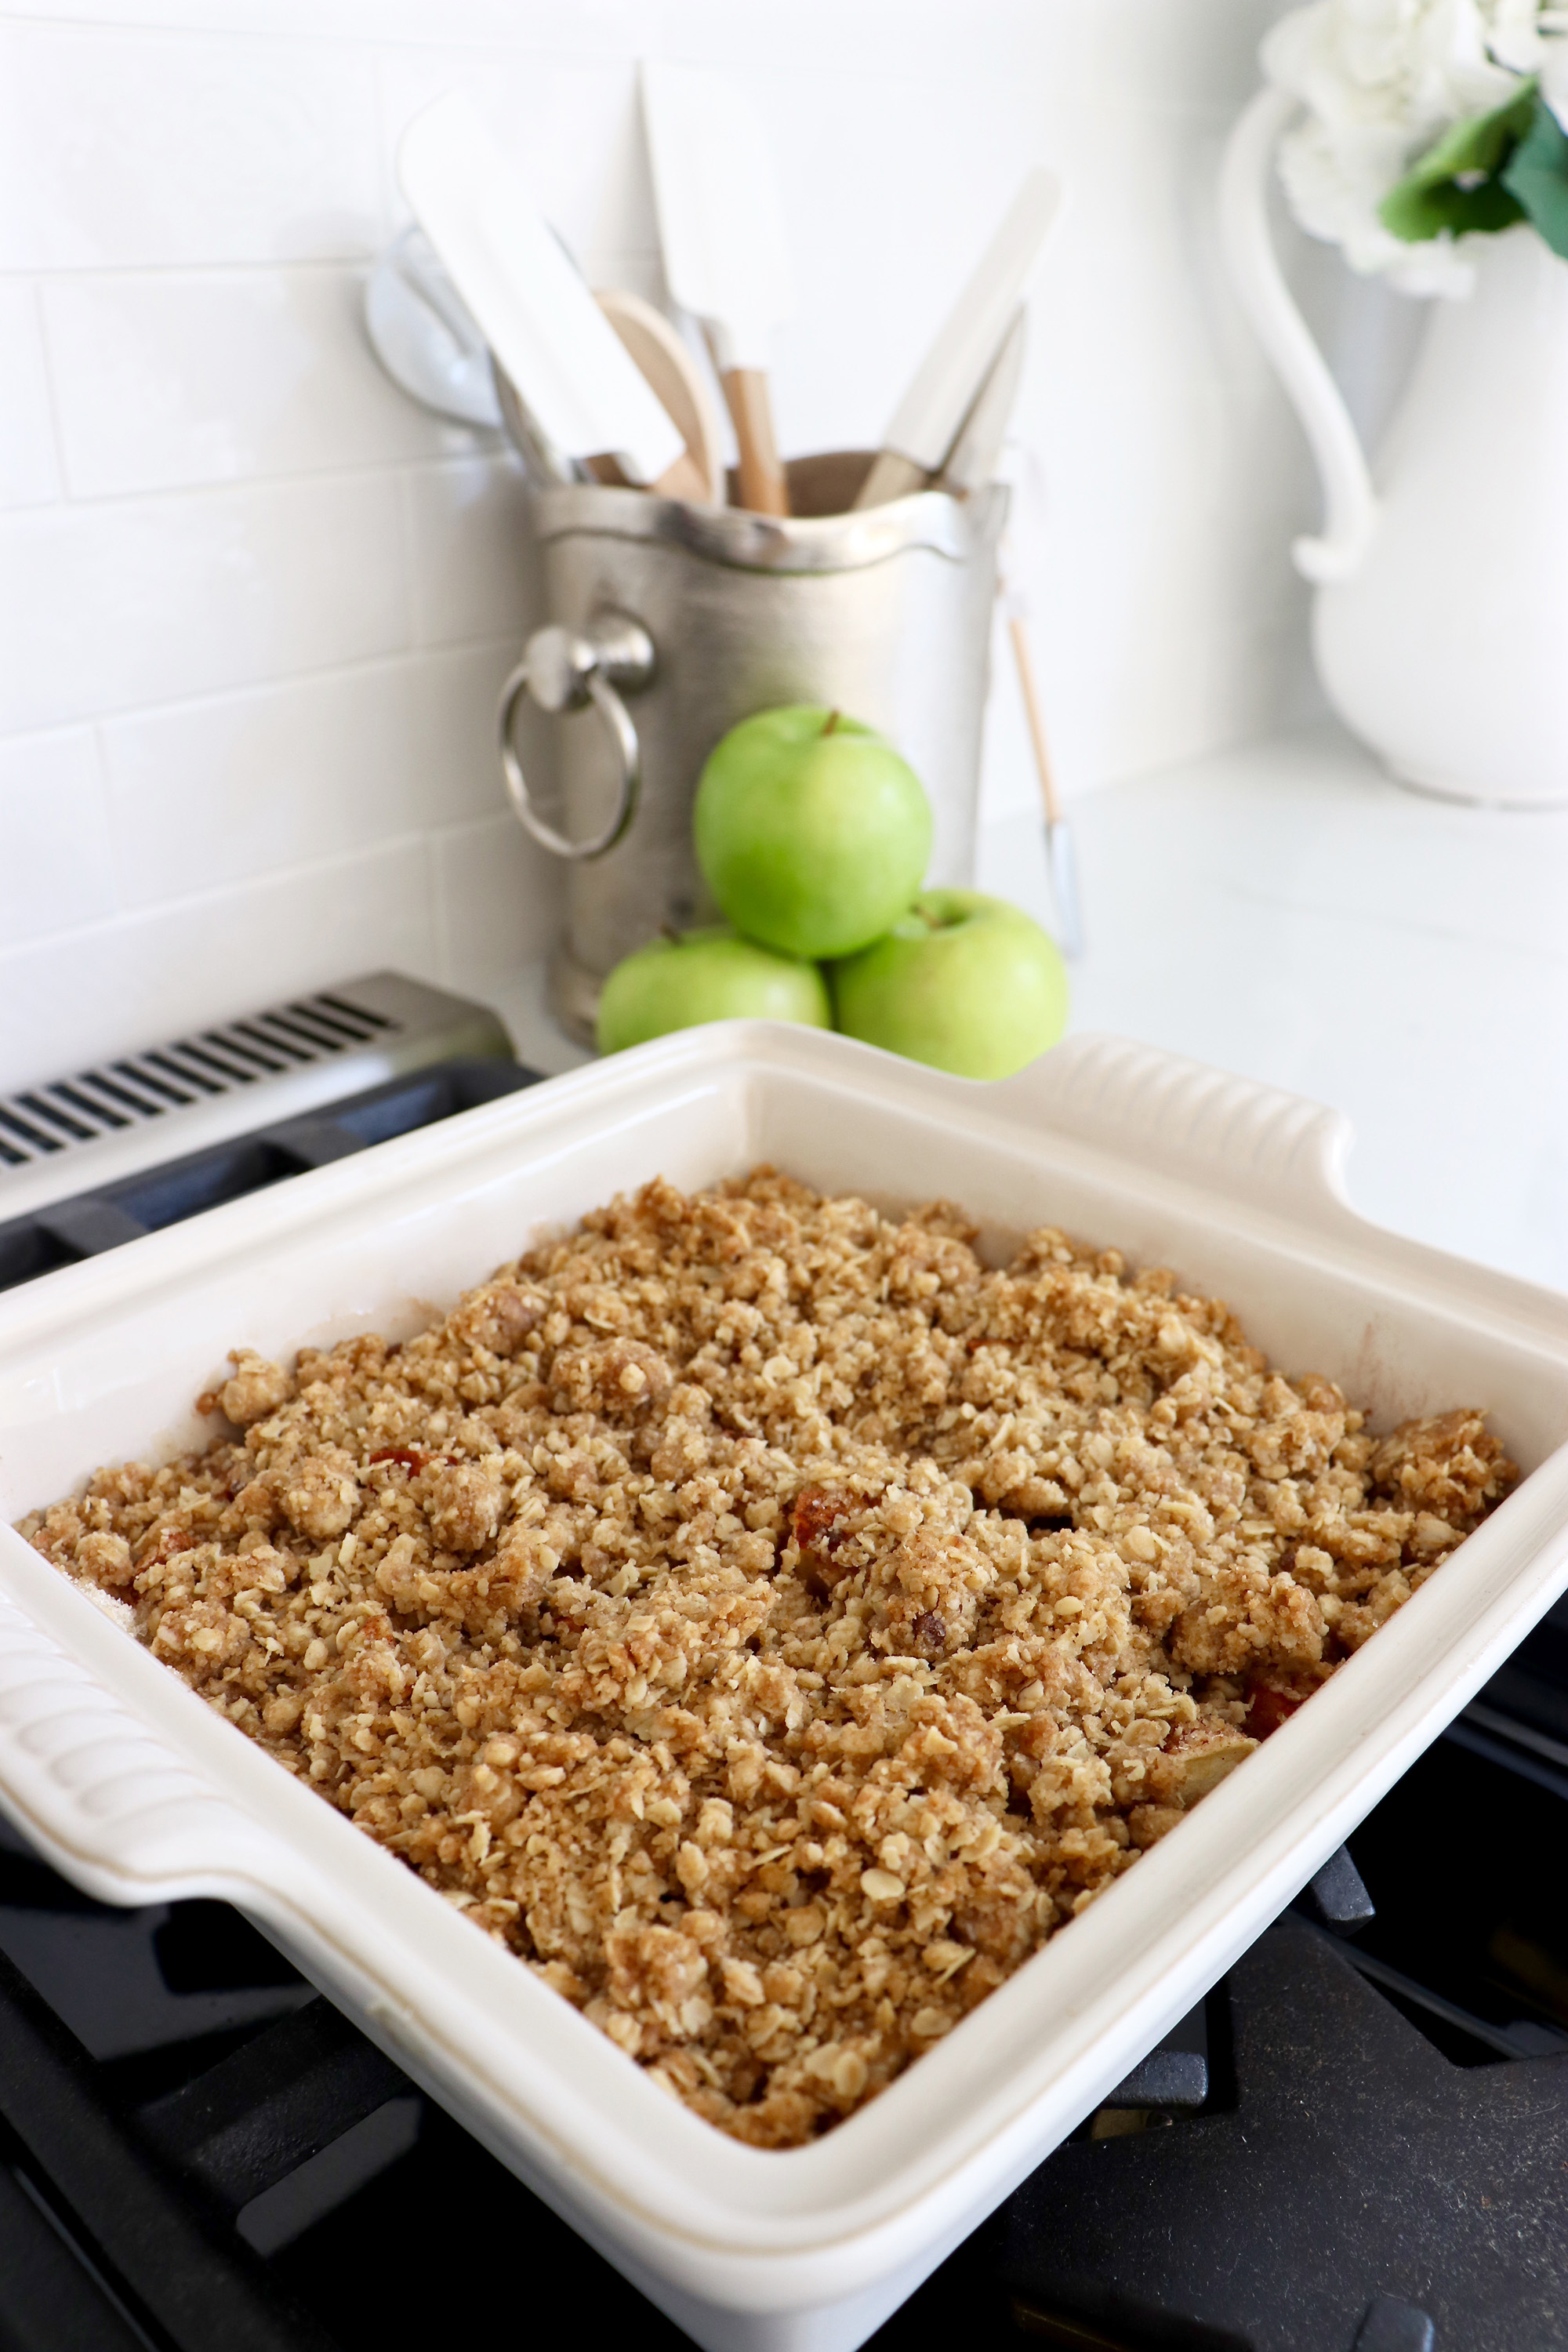 Jeff's Apple Oatmeal Crisp Recipe